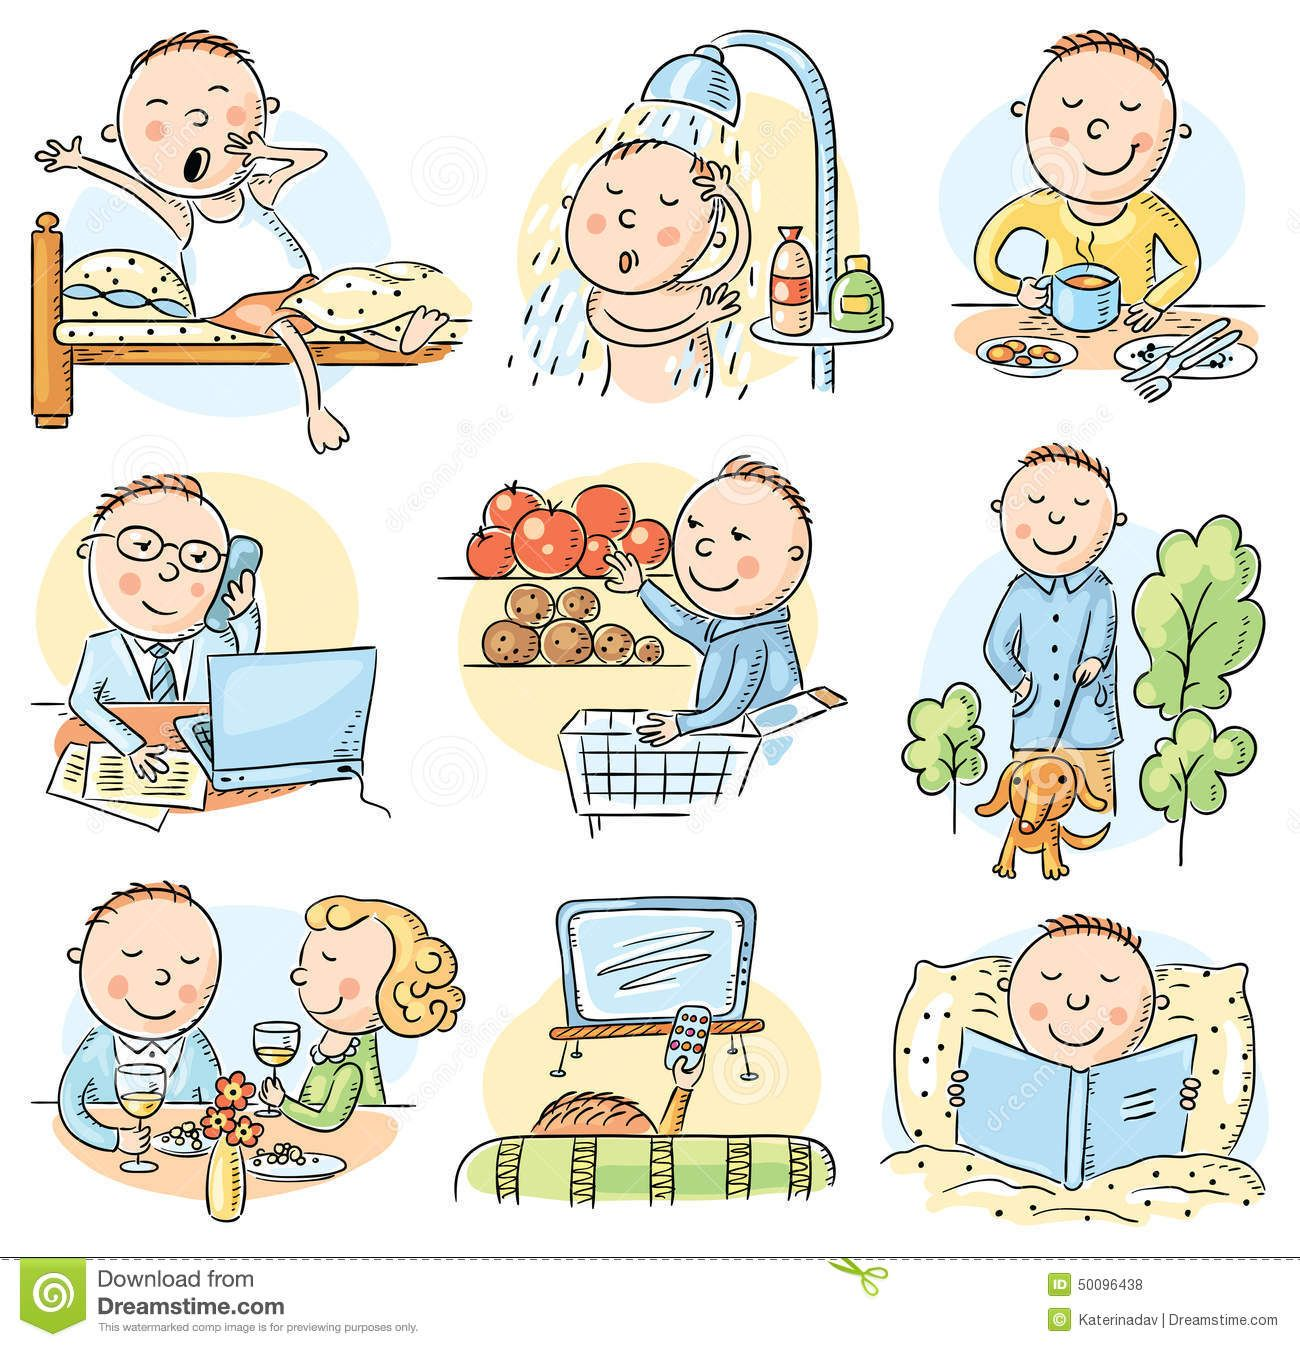 Routine clipart 6 » Clipart Station.